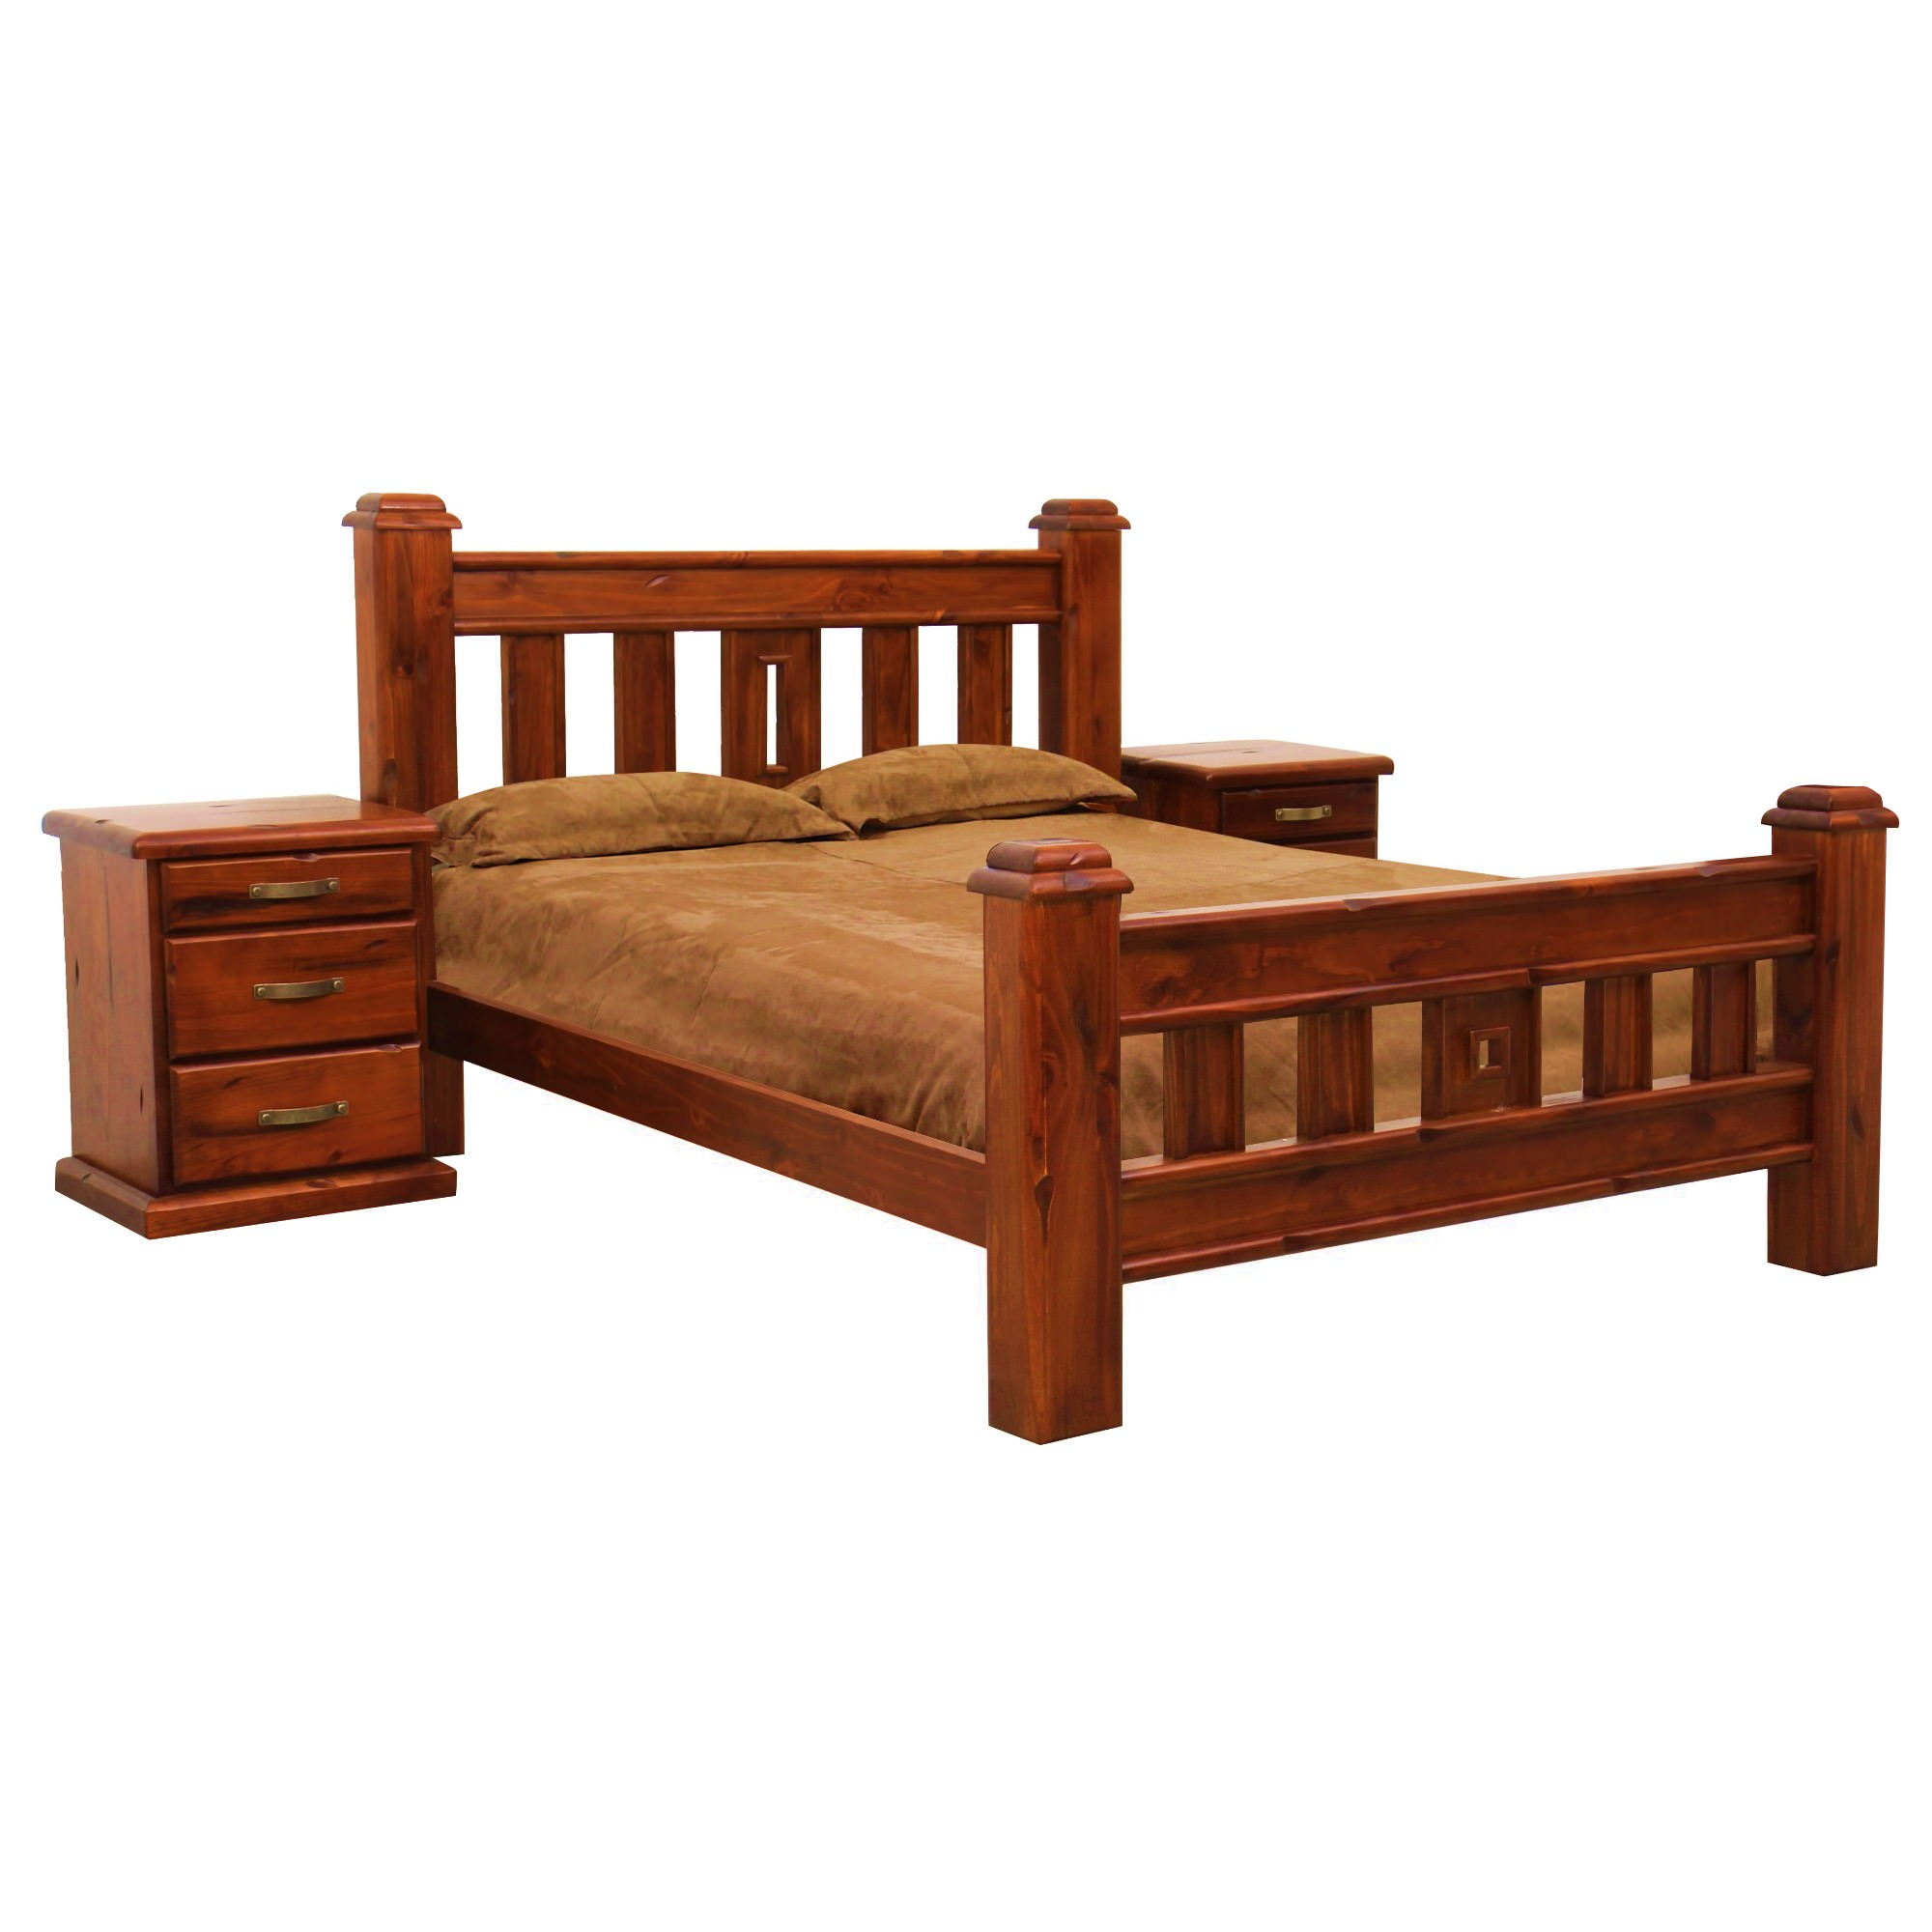 Serafi Pine Timber Bed, Double